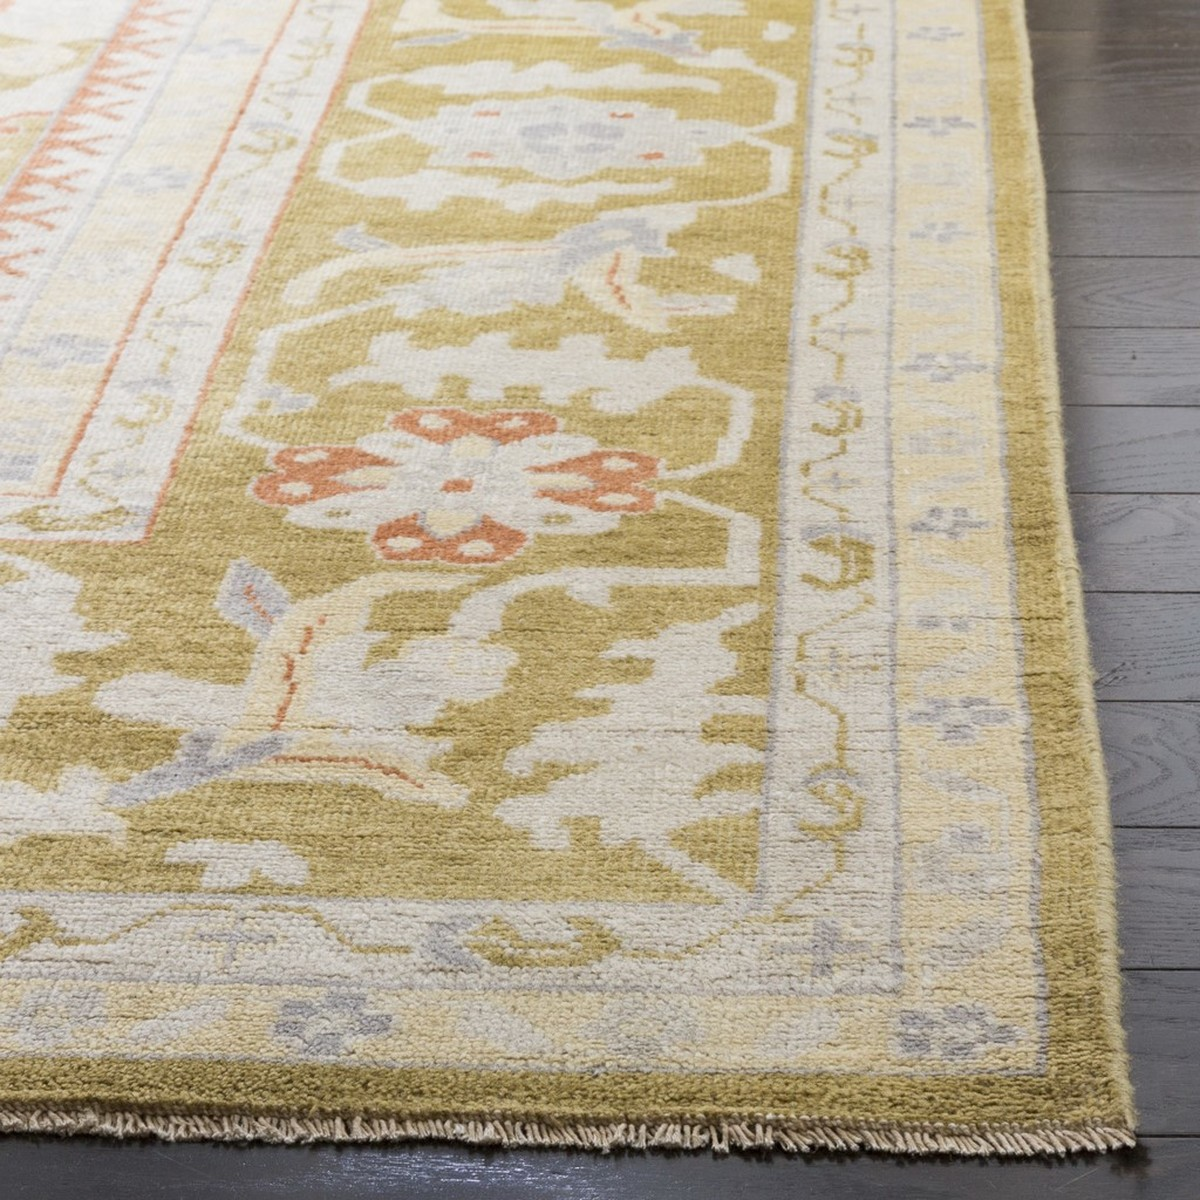 Rug Sul1077a Sultanabad Area Rugs By Safavieh